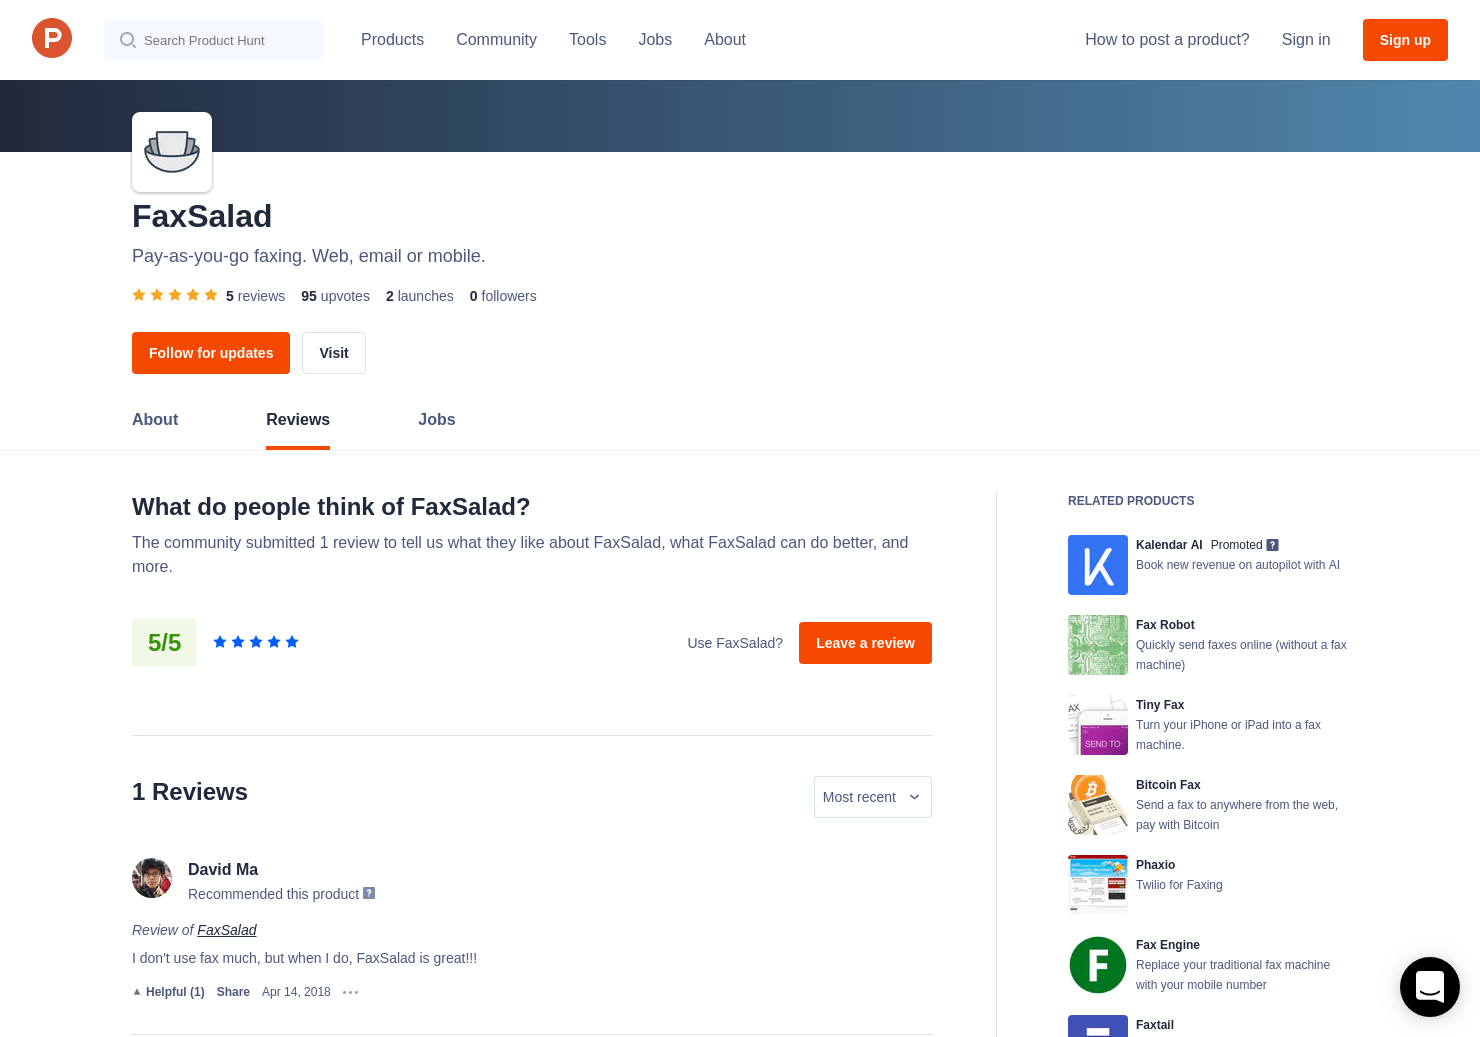 3 FaxSalad Reviews - Pros, Cons and Rating | Product Hunt